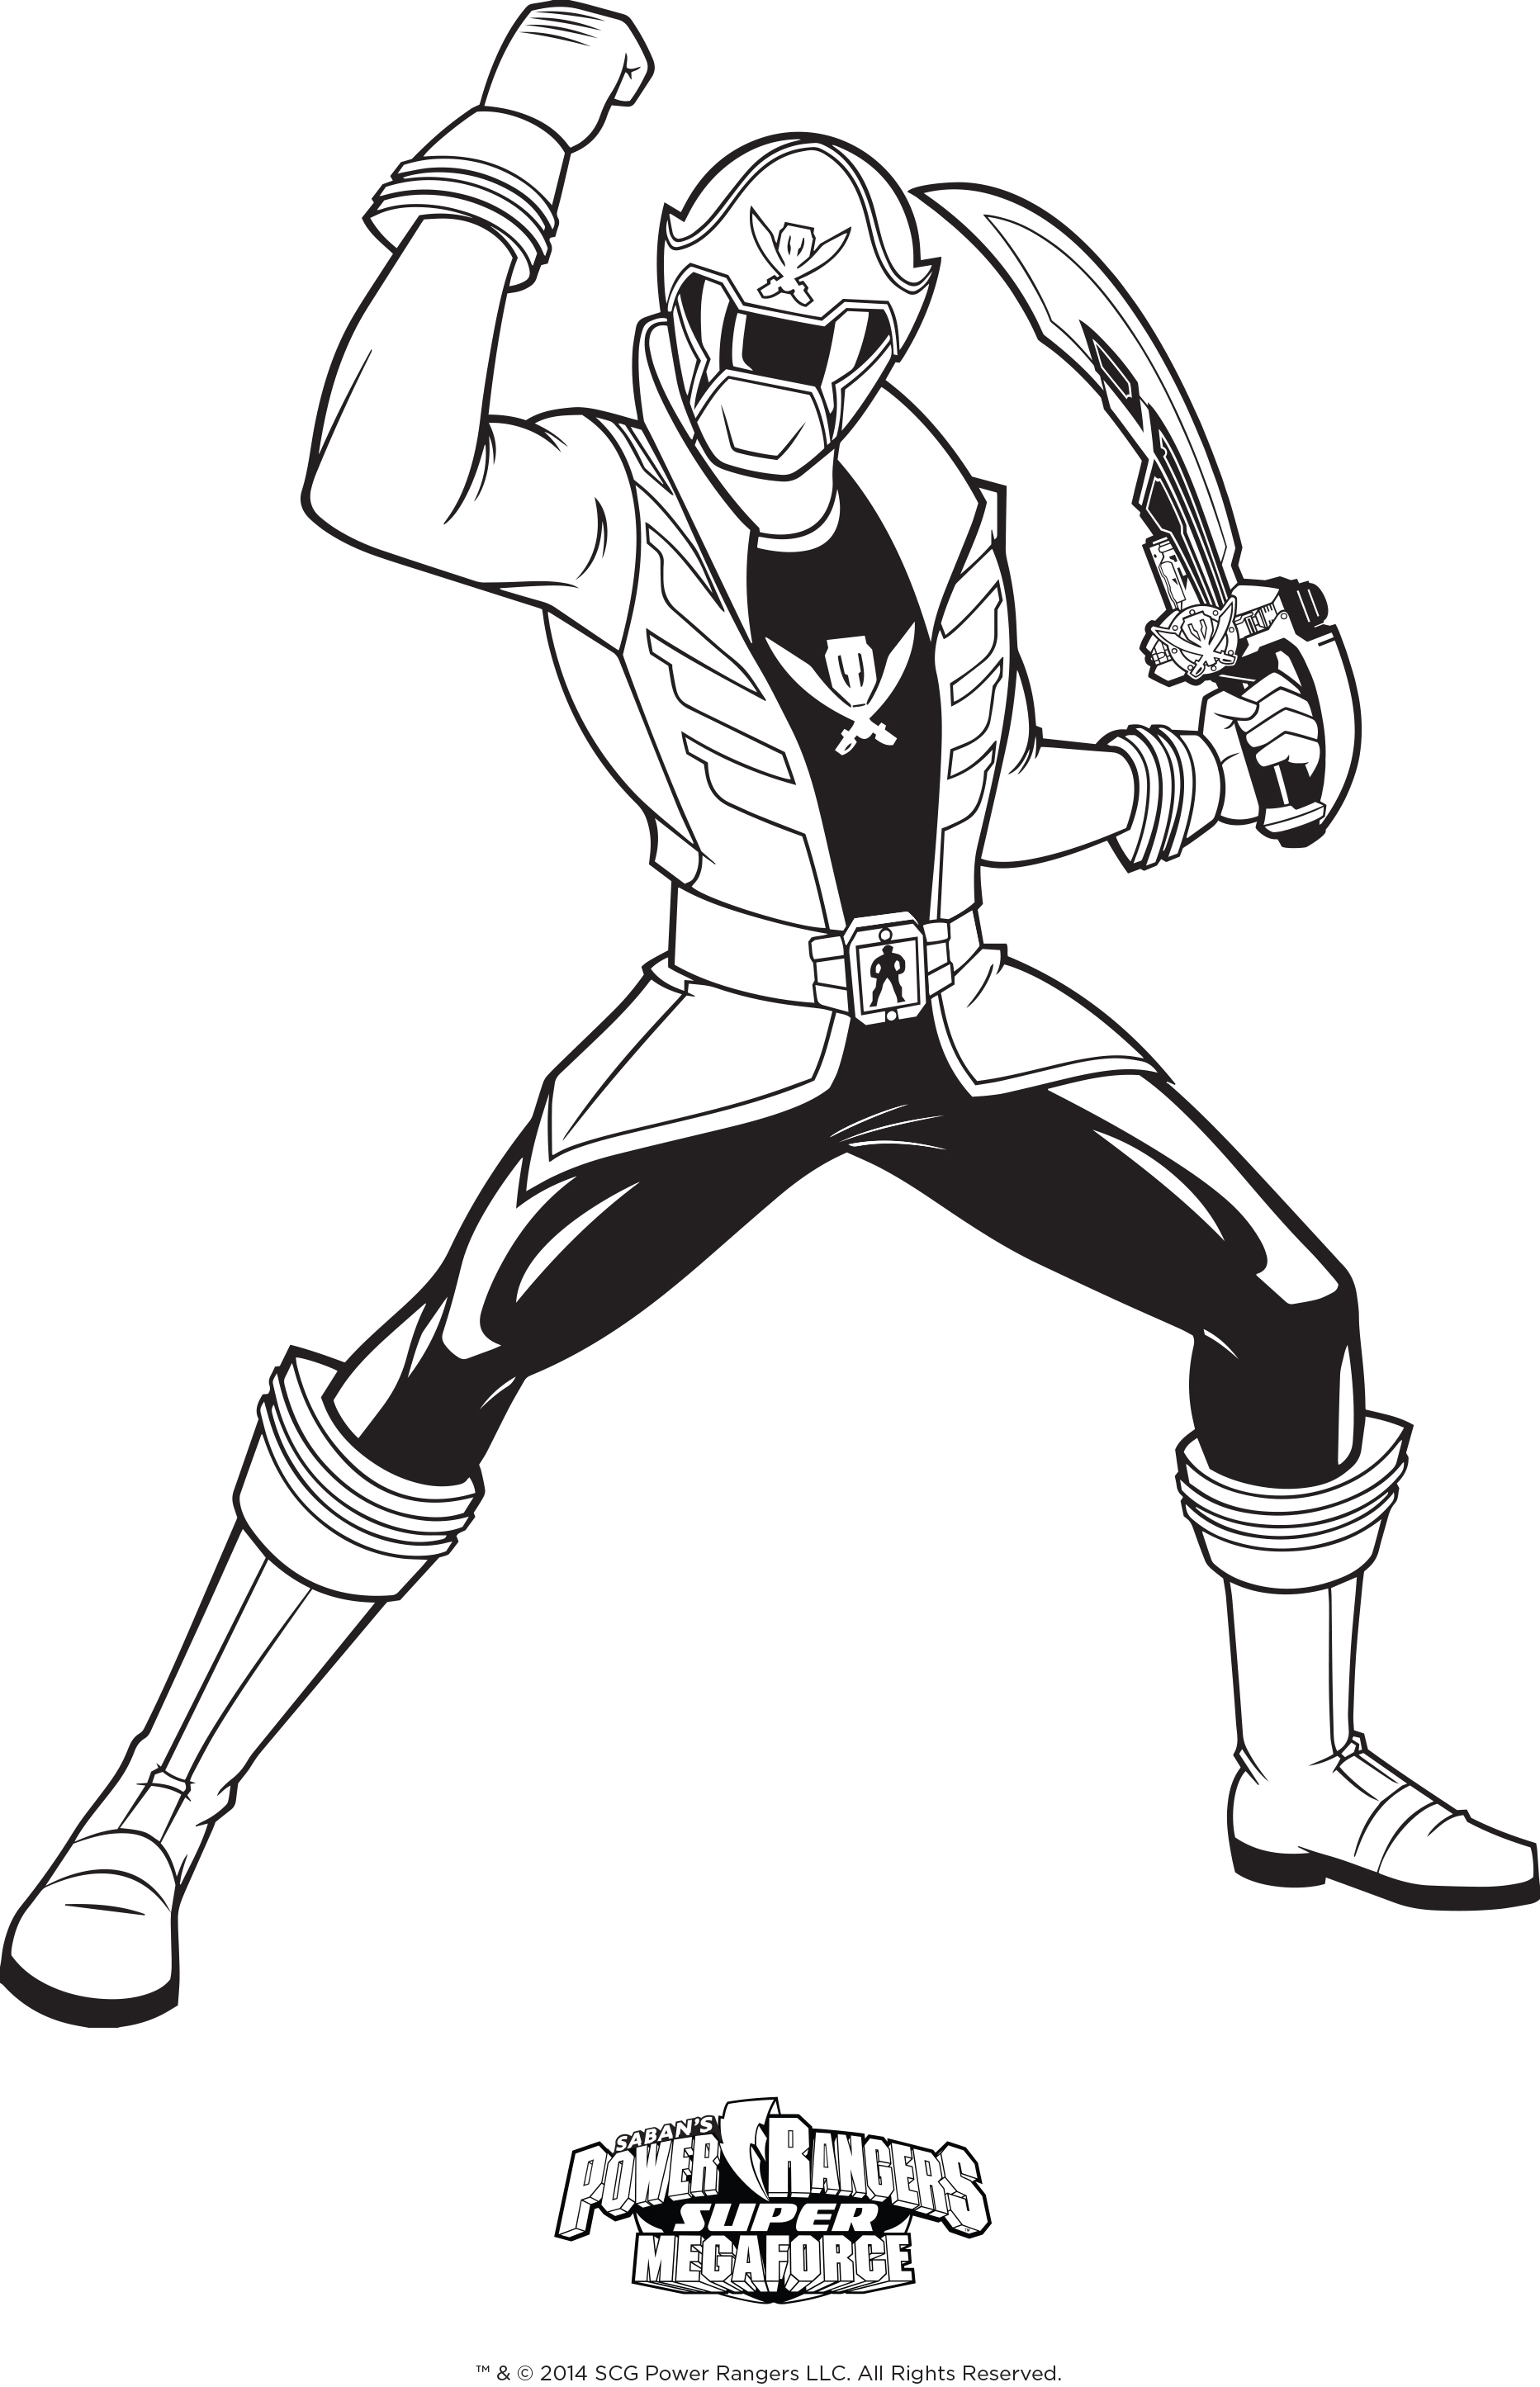 red power ranger drawing at getdrawings com free for personal use